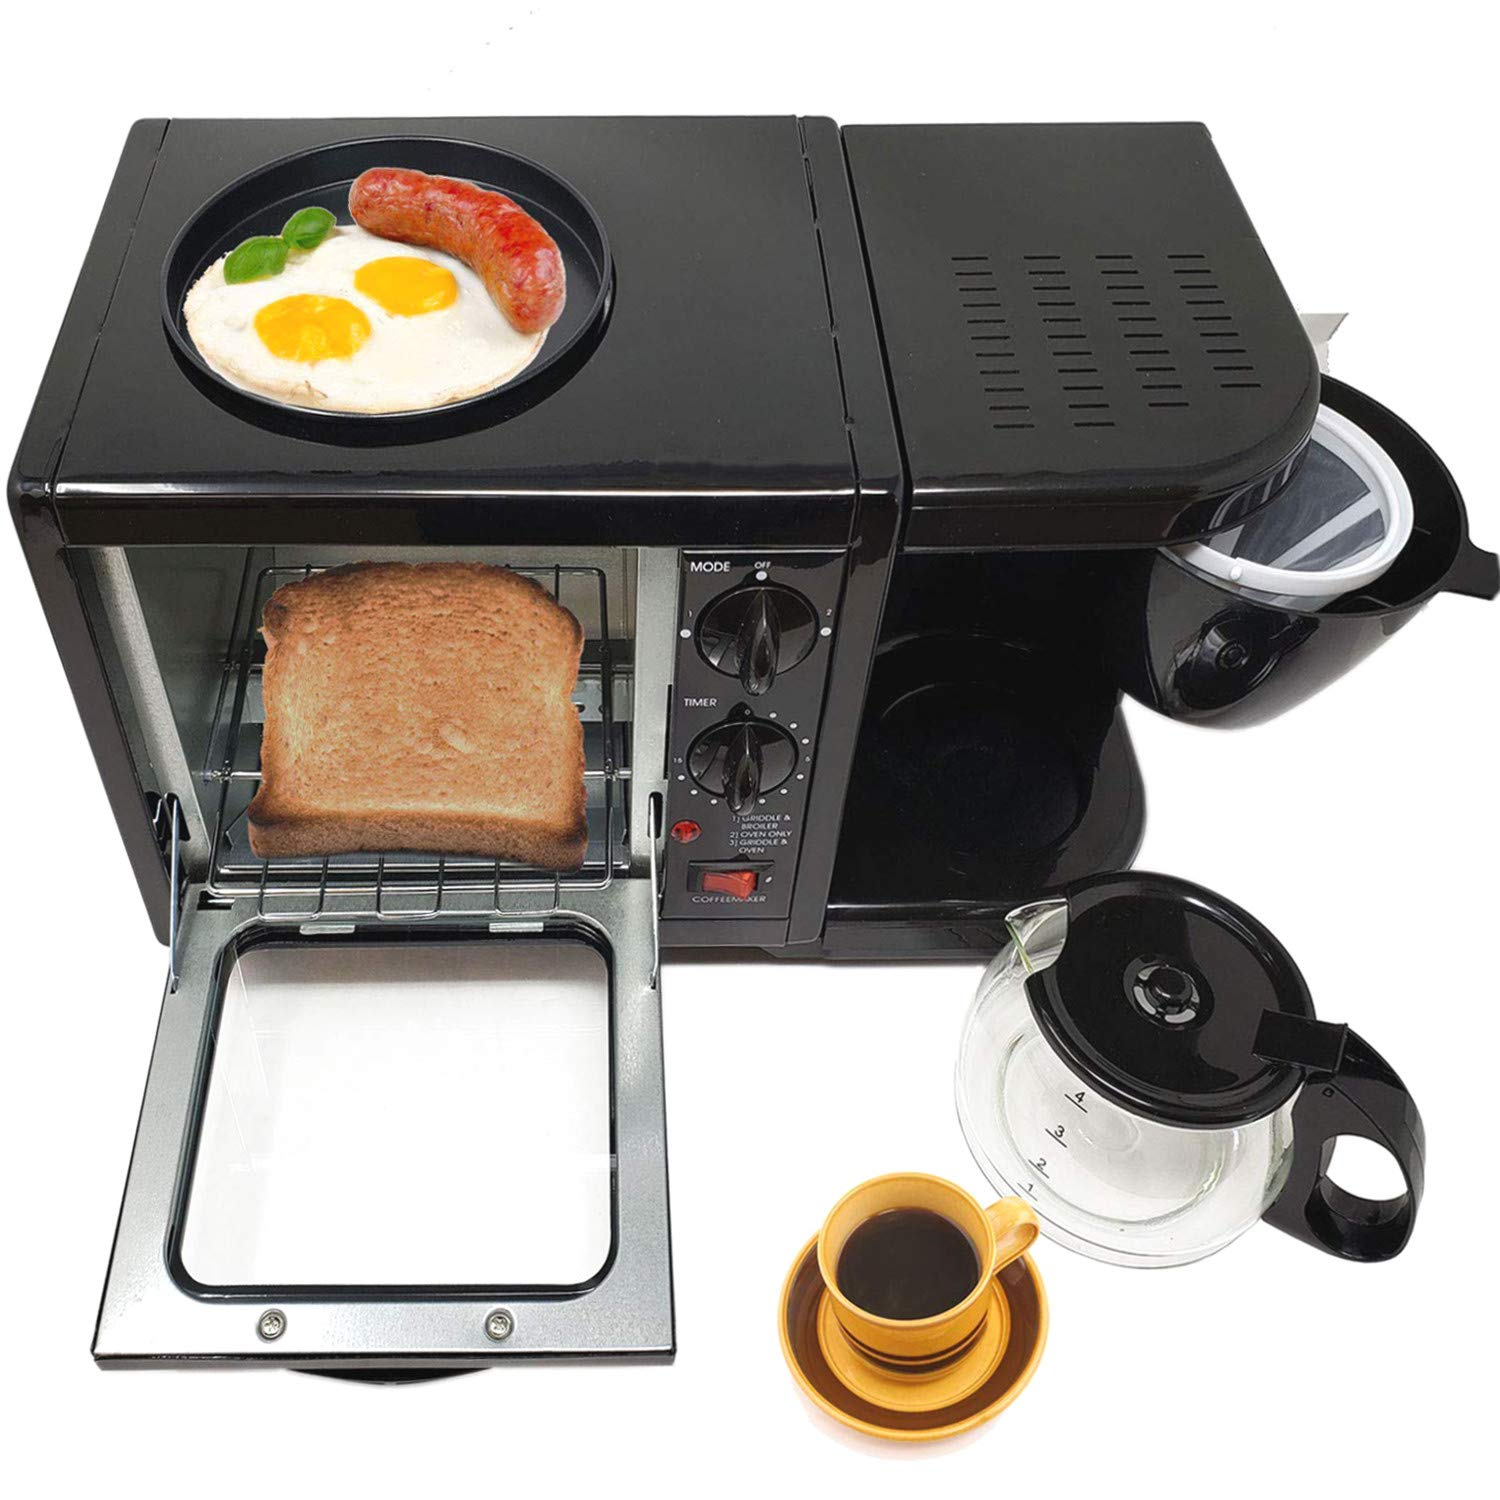 "3 in 1 Breakfast Maker Station Hub 500W 5L With( 650W 4 Cup Espresso Coffee Maker, Multi Function 500W/5L Toaster Oven, Non Stick 6"" Griddle)Removable Crumb Tray Timer Control Glass Carafe-PFOA Free,ETL Approved-Black"